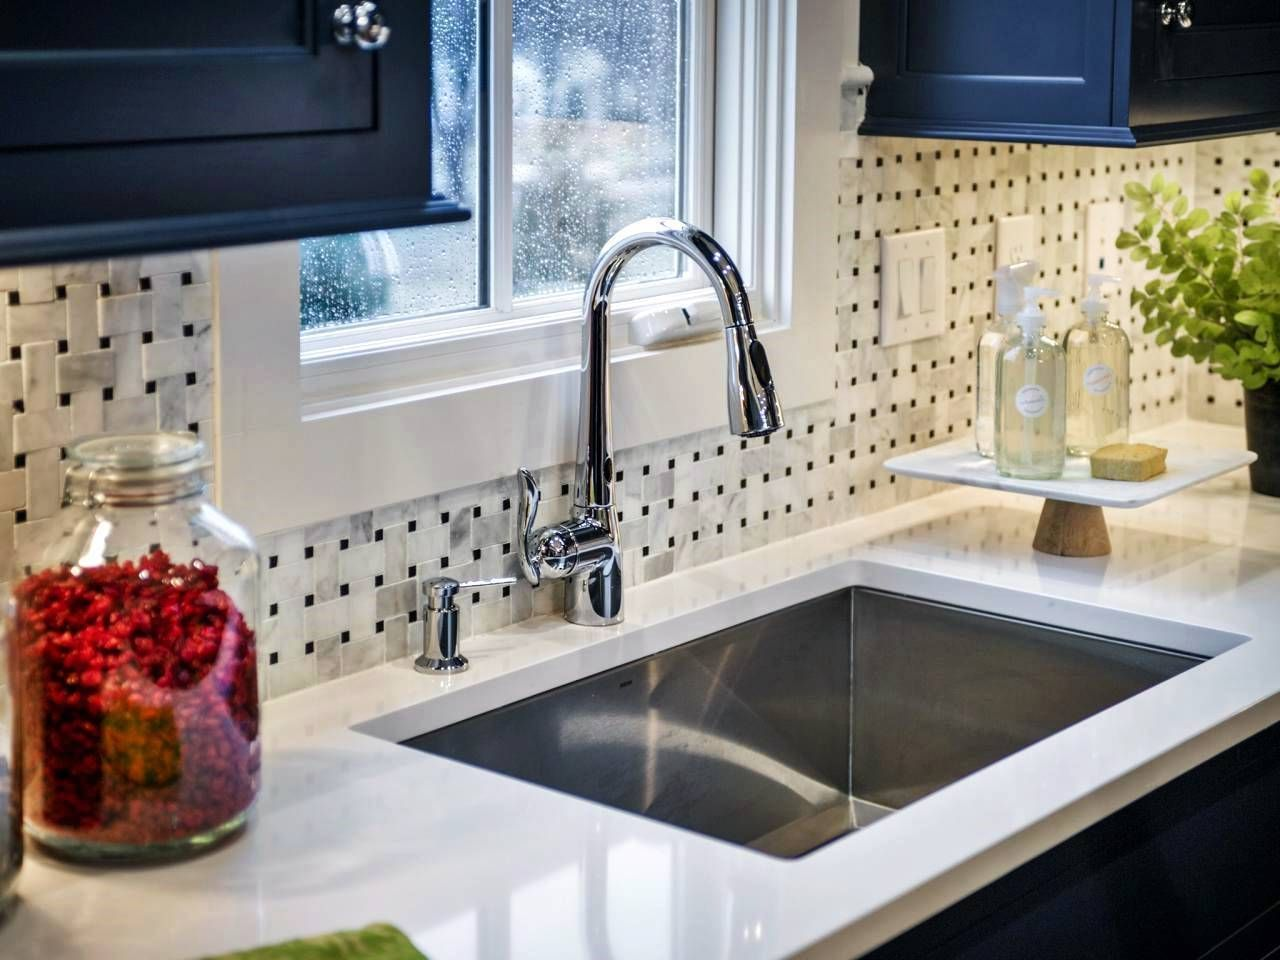 Inexpensive Backsplash Ideas For Kitchen Part - 43: Best Inexpensive Kitchen Backsplash Ideas From Cheap Backsplash Ideas For  Kitchen